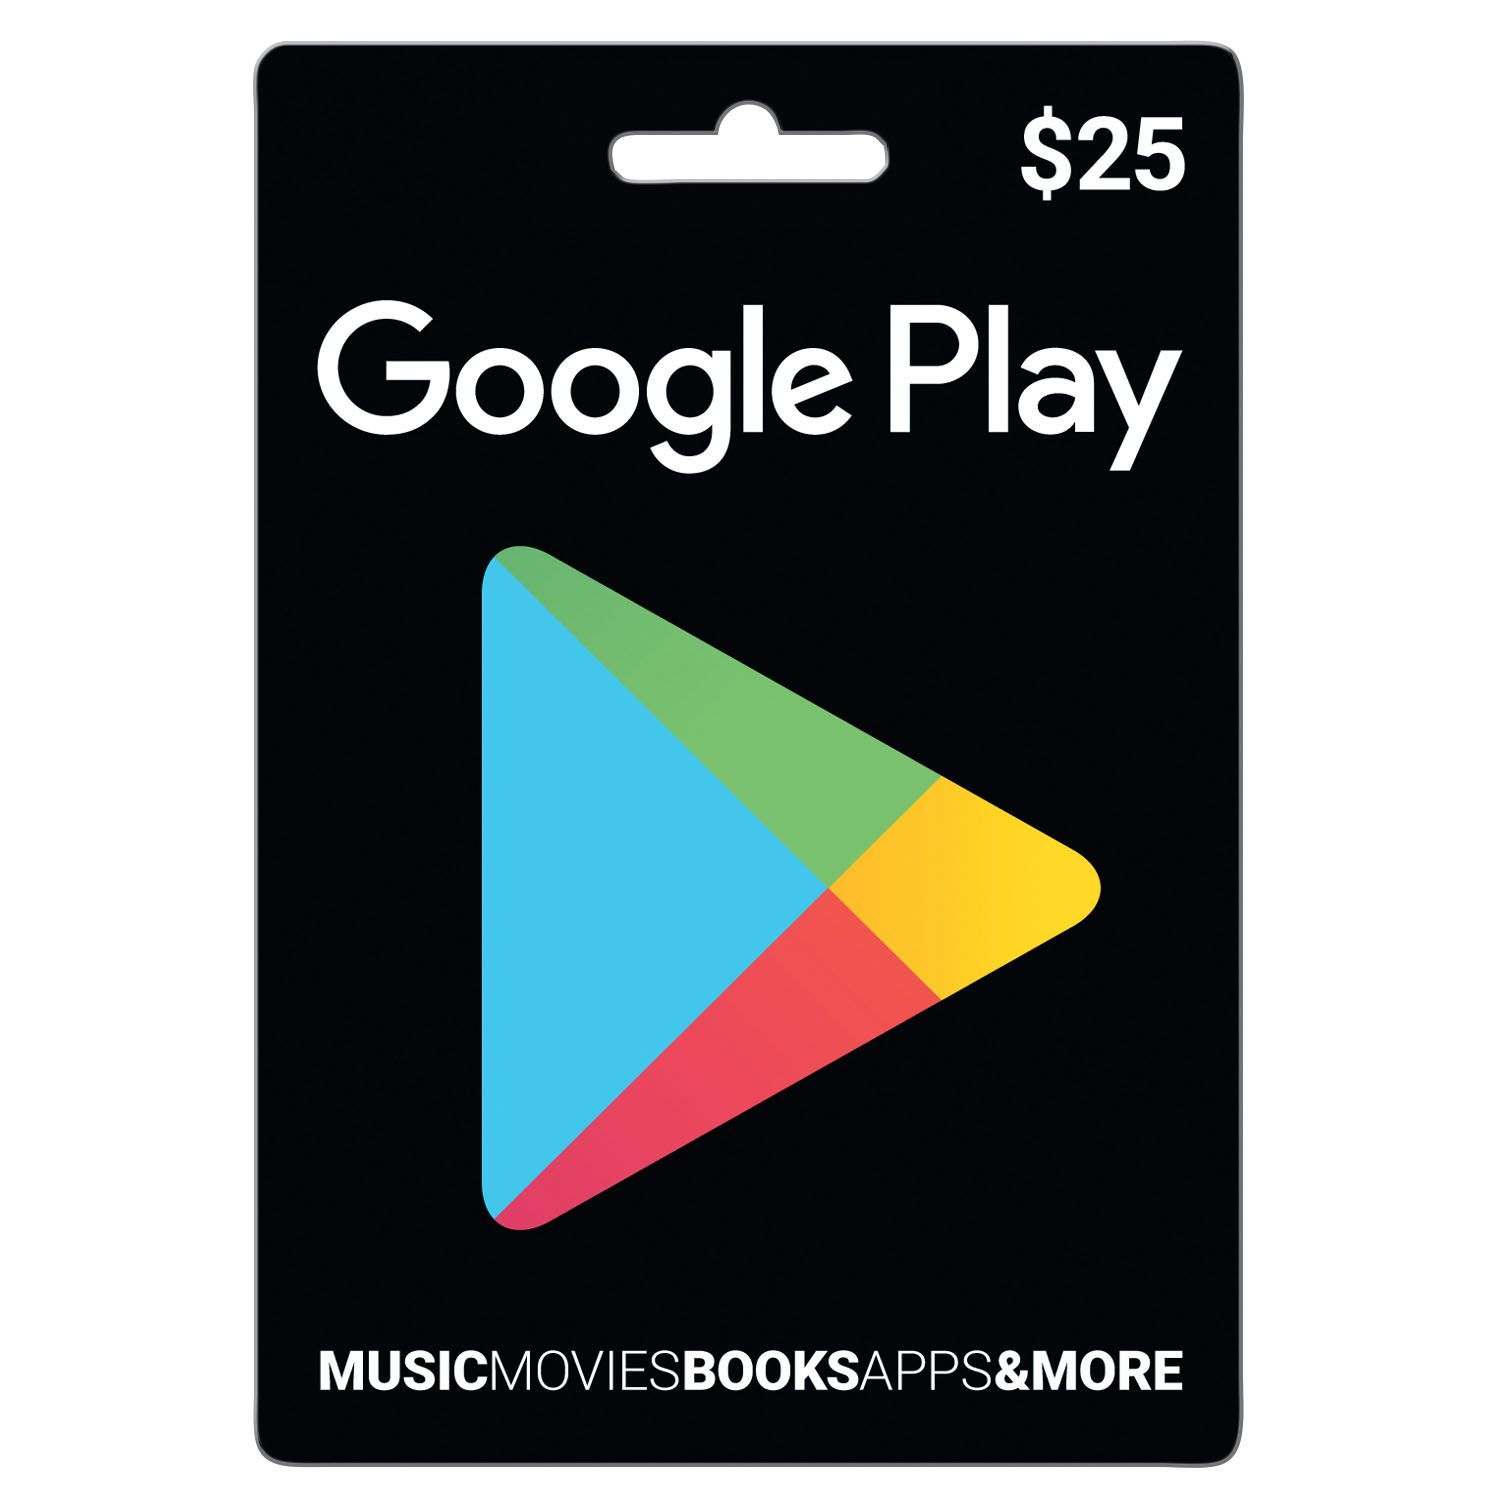 Gift Card Numbers For Google Play Google Play $25 Gift Card